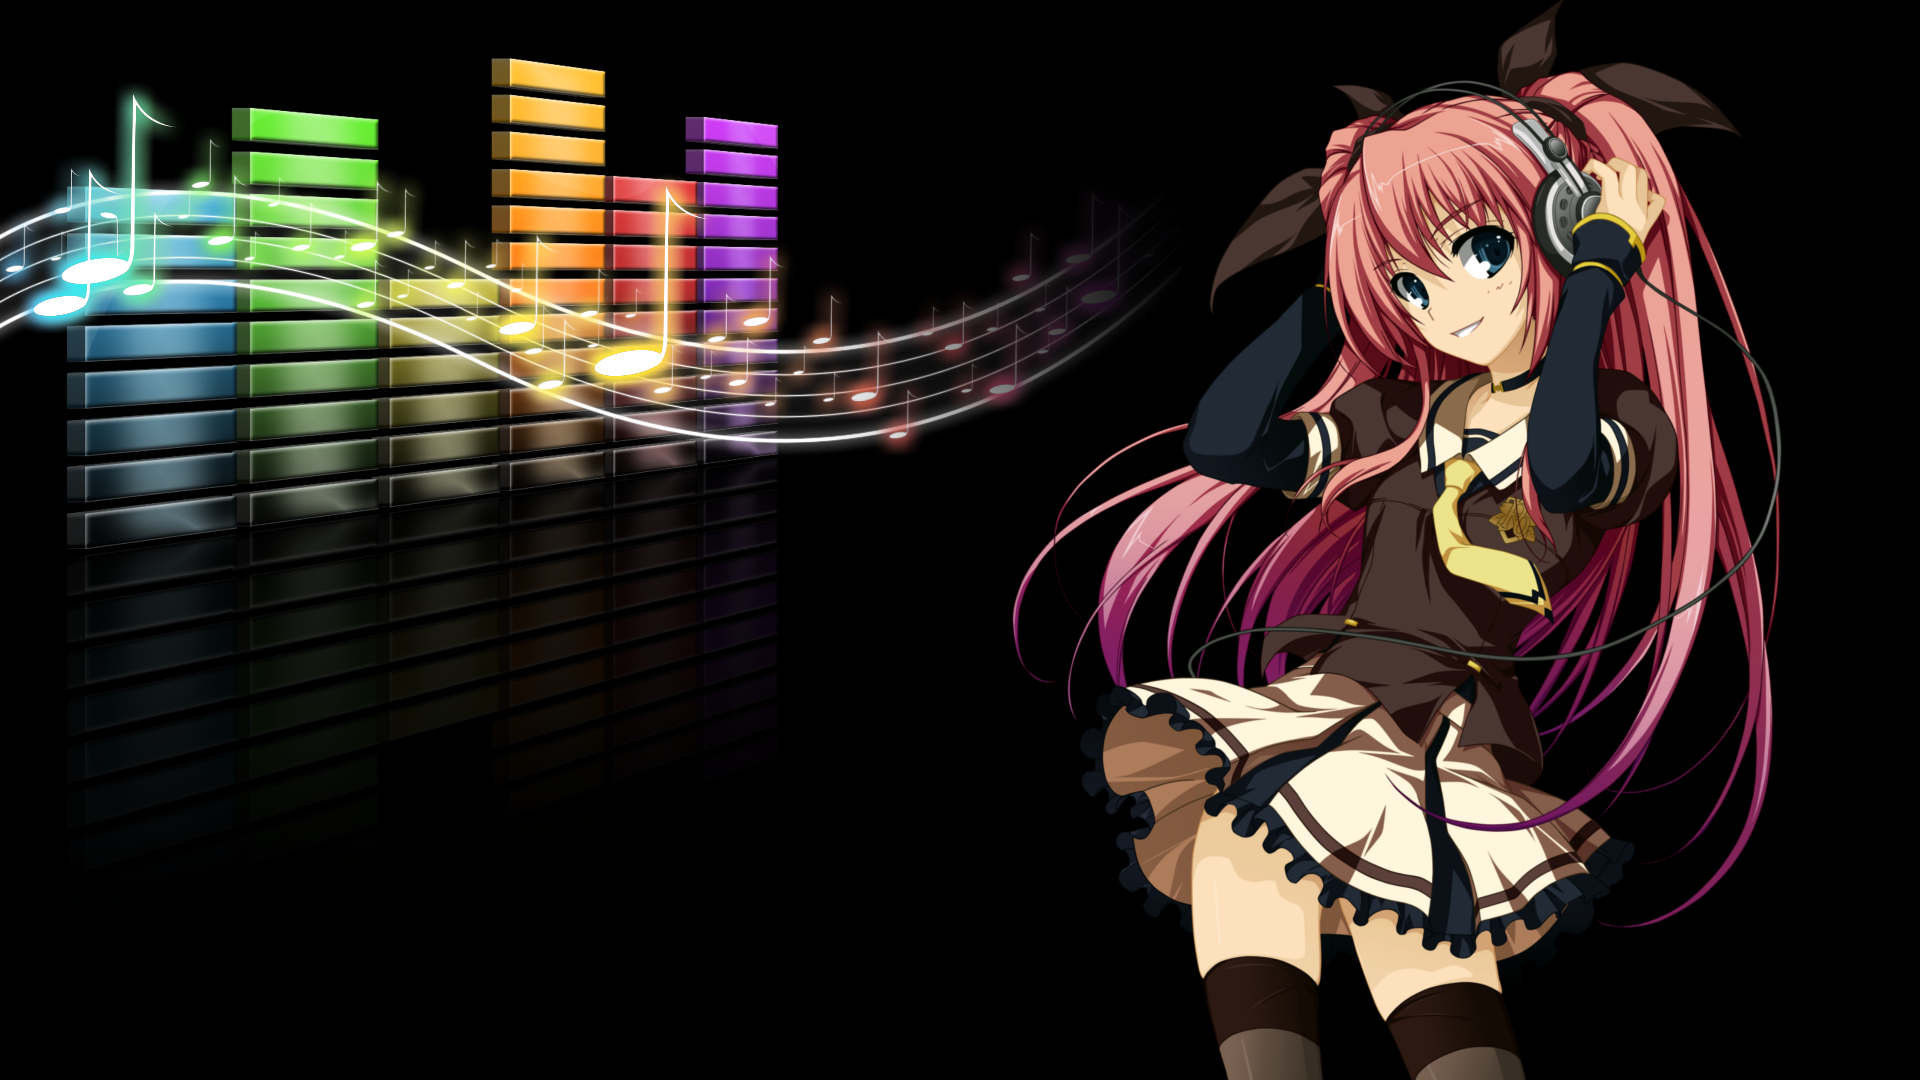 music girl wallpapers headphones - photo #27